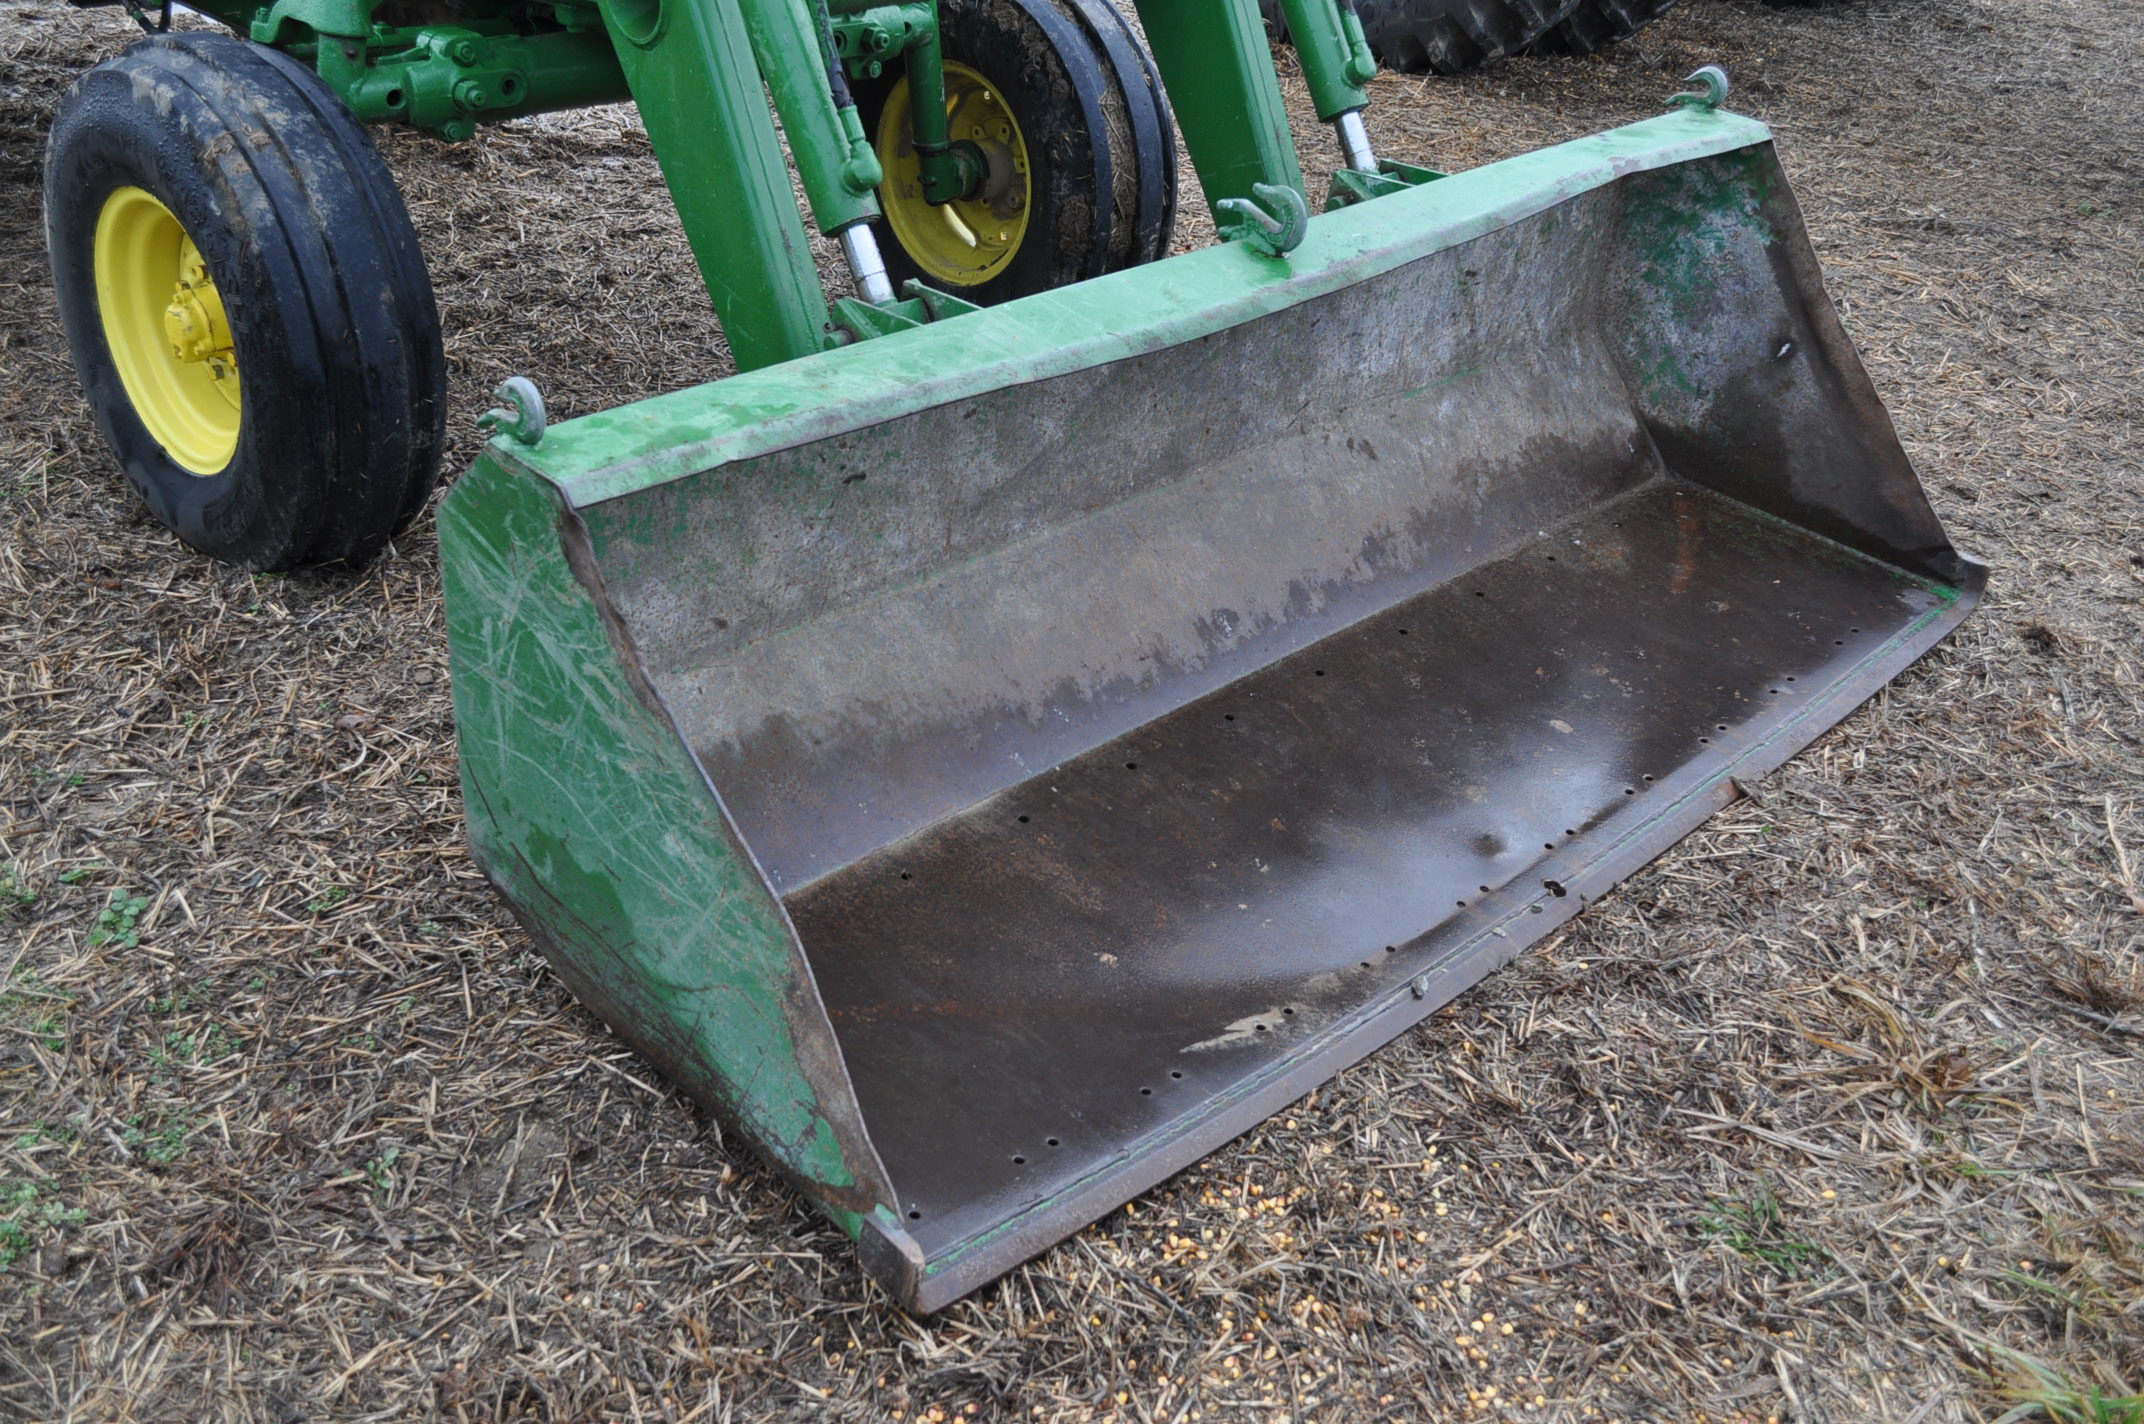 John Deere 4020 tractor, diesel, 18.4-34 tires w/ clamp on dual rims, 11L-15 front, ROPS w/ - Image 5 of 22